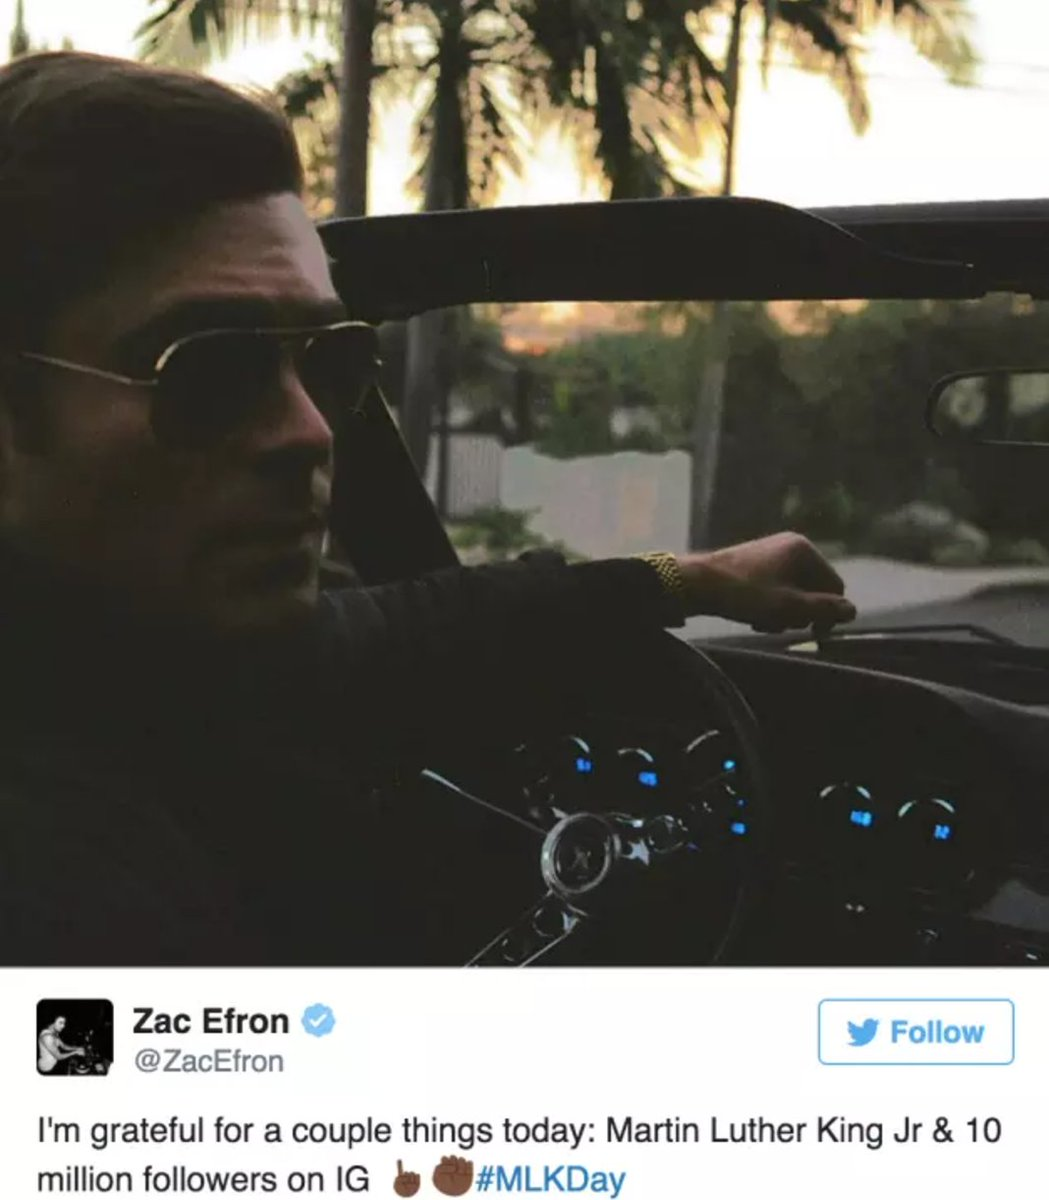 I just remembered it's the one-year anniversary of my favorite deleted Zac Efron tweet #neverforget